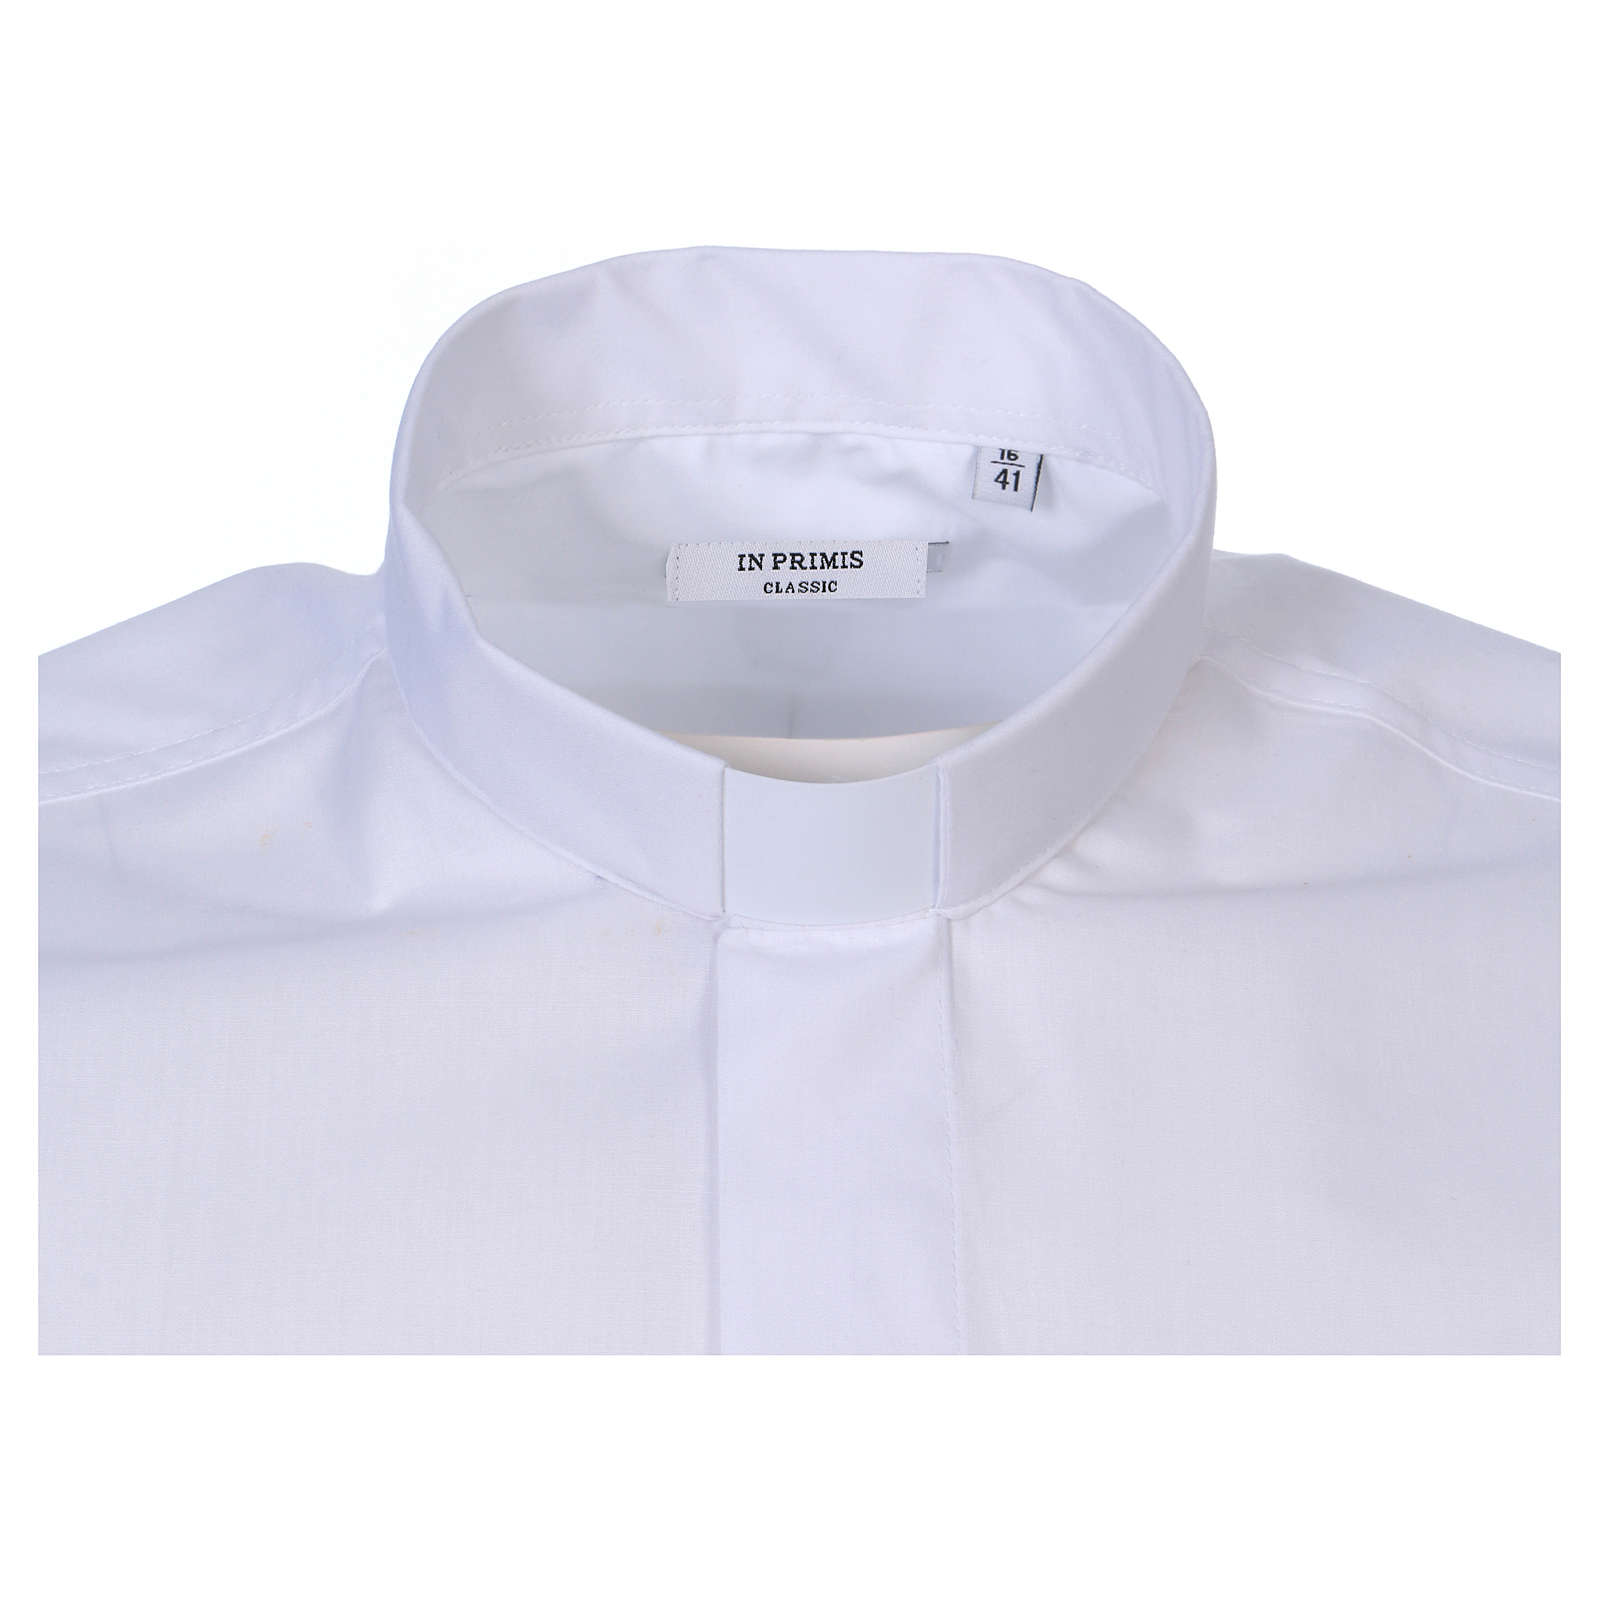 Short-sleeved clergy shirt in white cotton blend In Primis 4